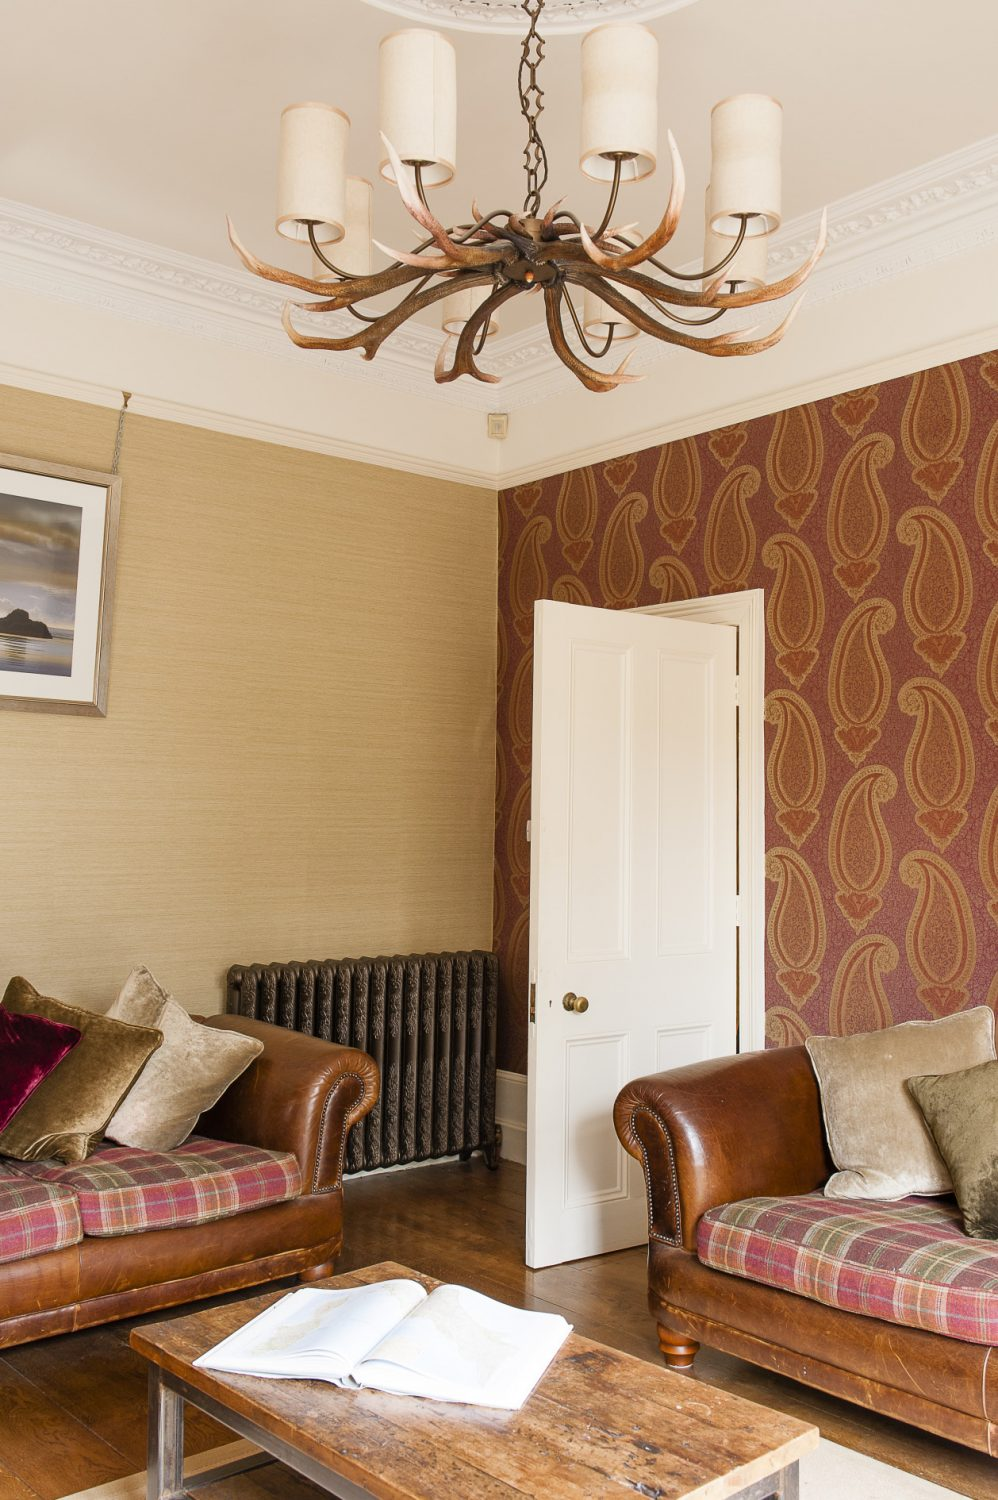 The back room is understated, calm and has quite a masculine feel. There are comfortable leather sofas with tartan cushions, and an open fire